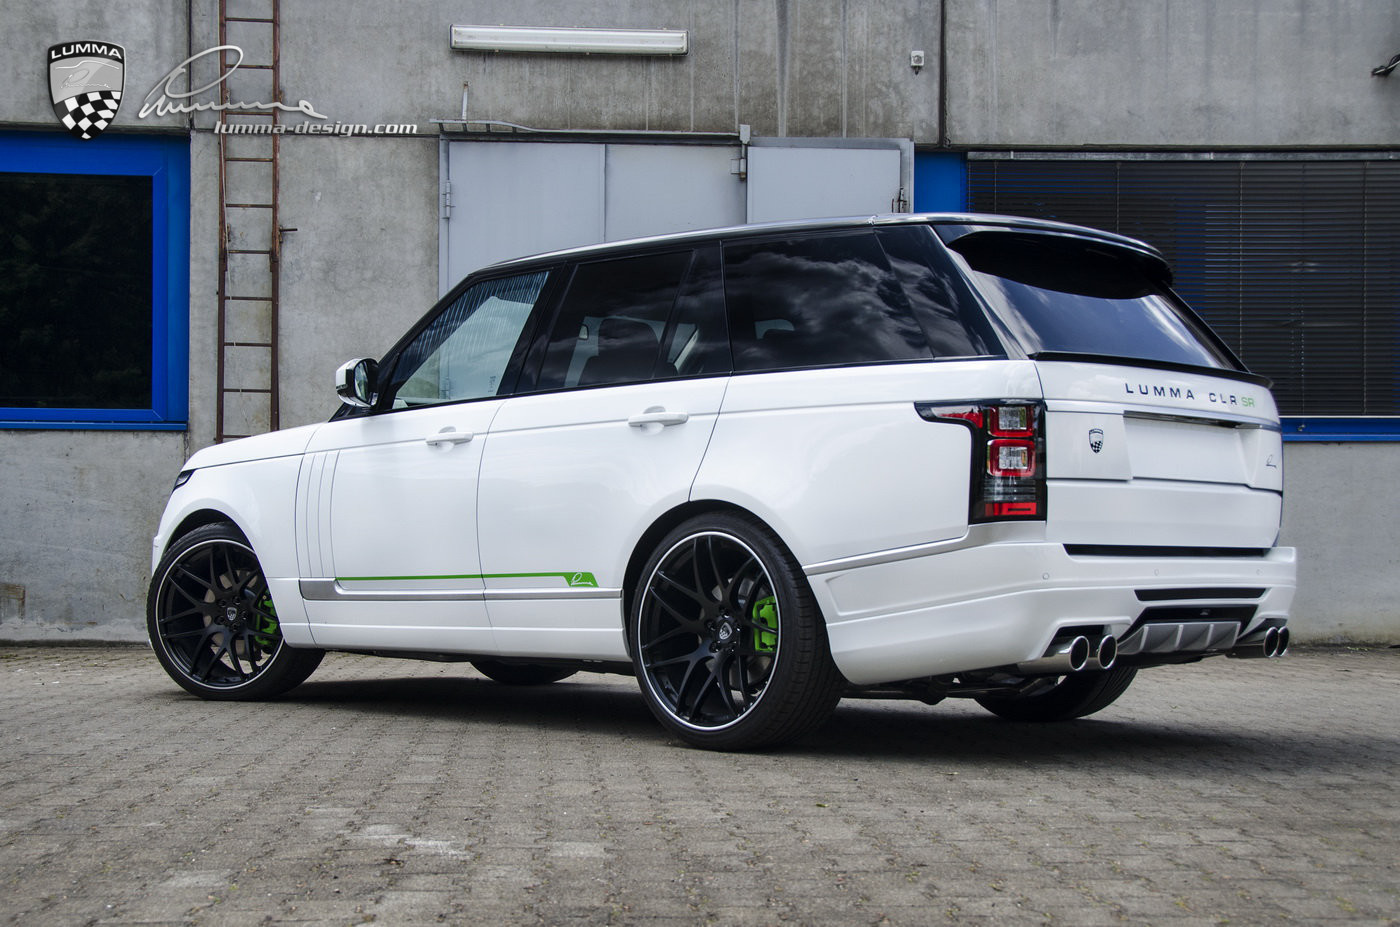 Lumma News Clr Sr Conversion Based On Range Rover Vogue